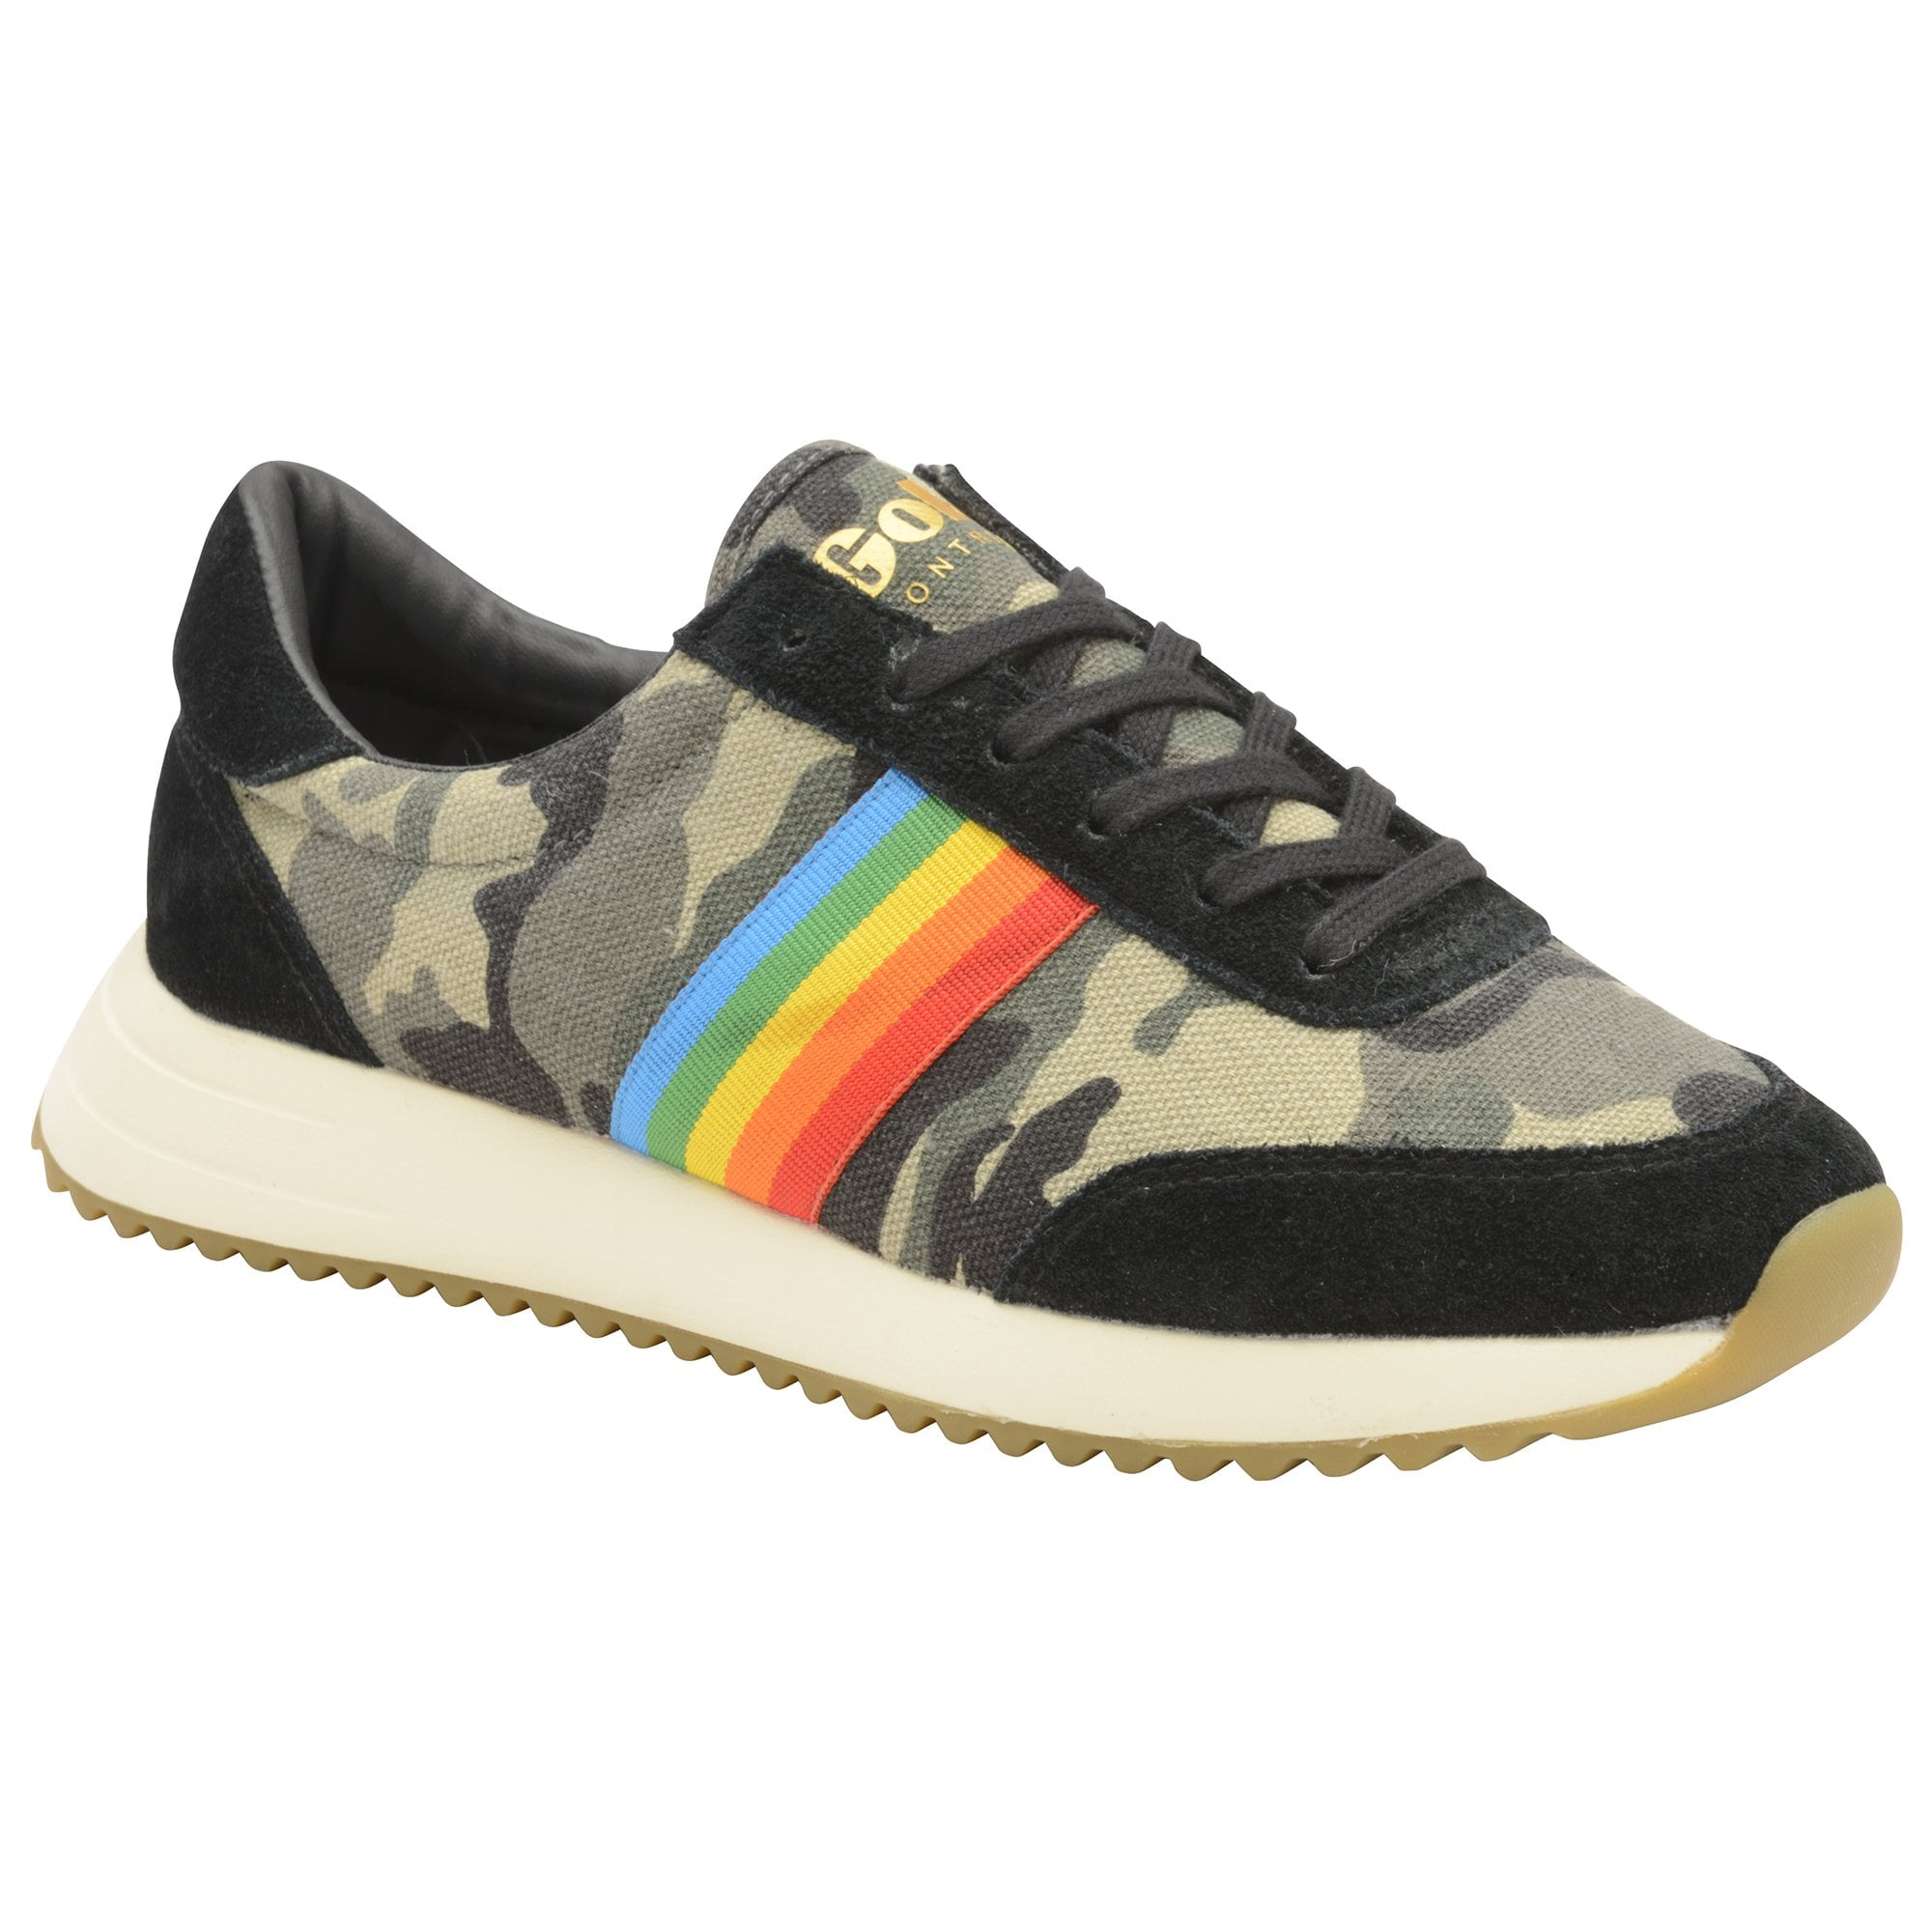 Gola womens montreal trainers in camo